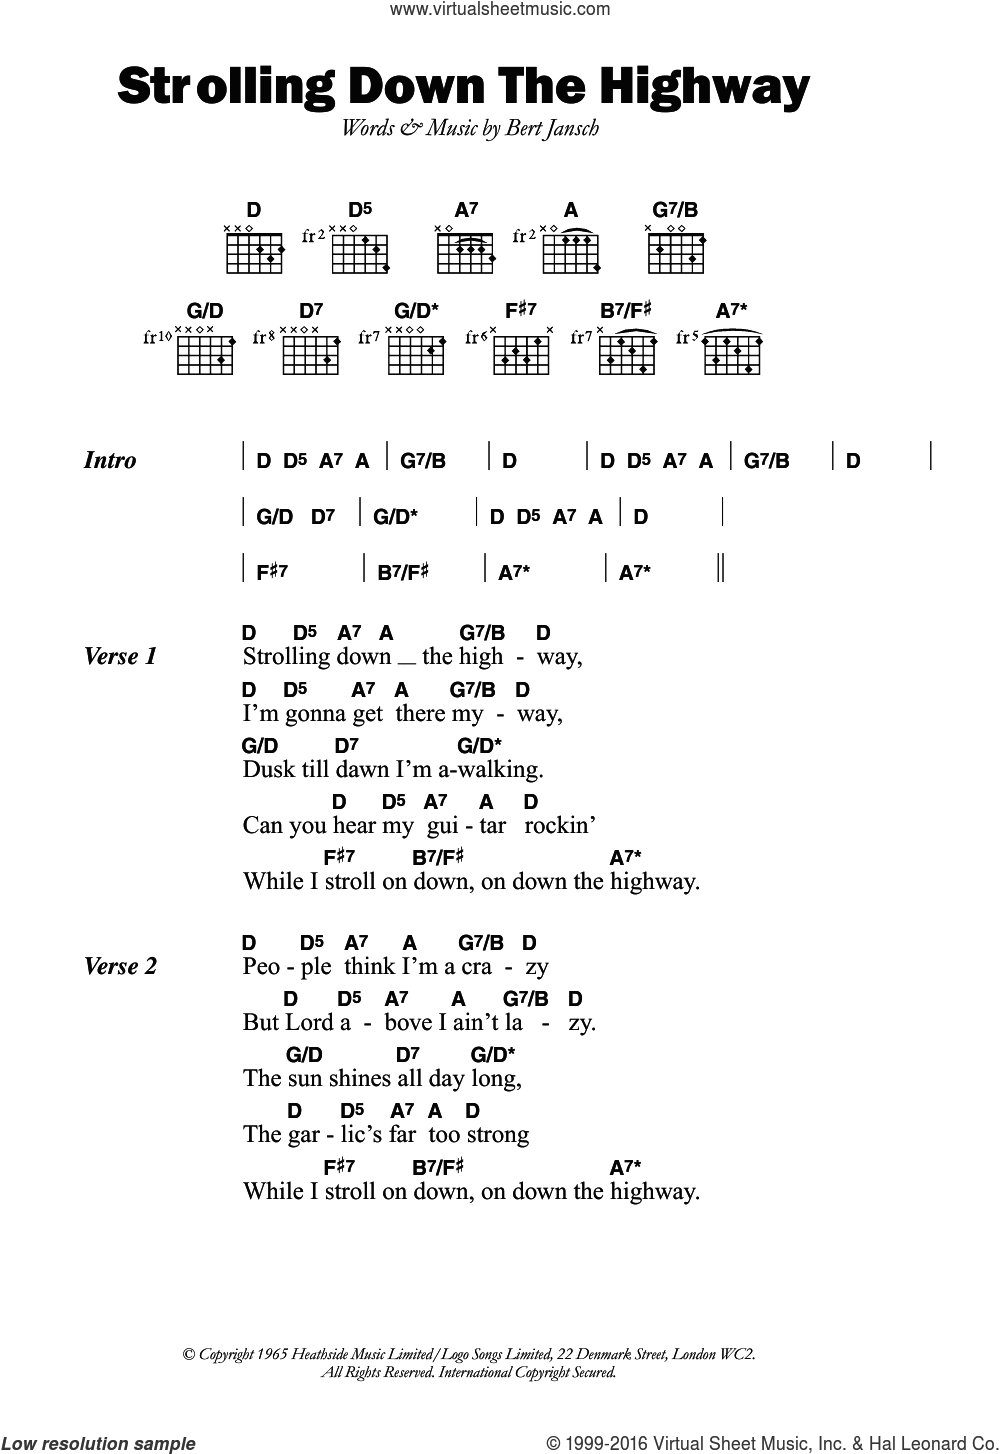 Strolling Down The Highway sheet music for guitar (chords) by Bert Jansch. Score Image Preview.